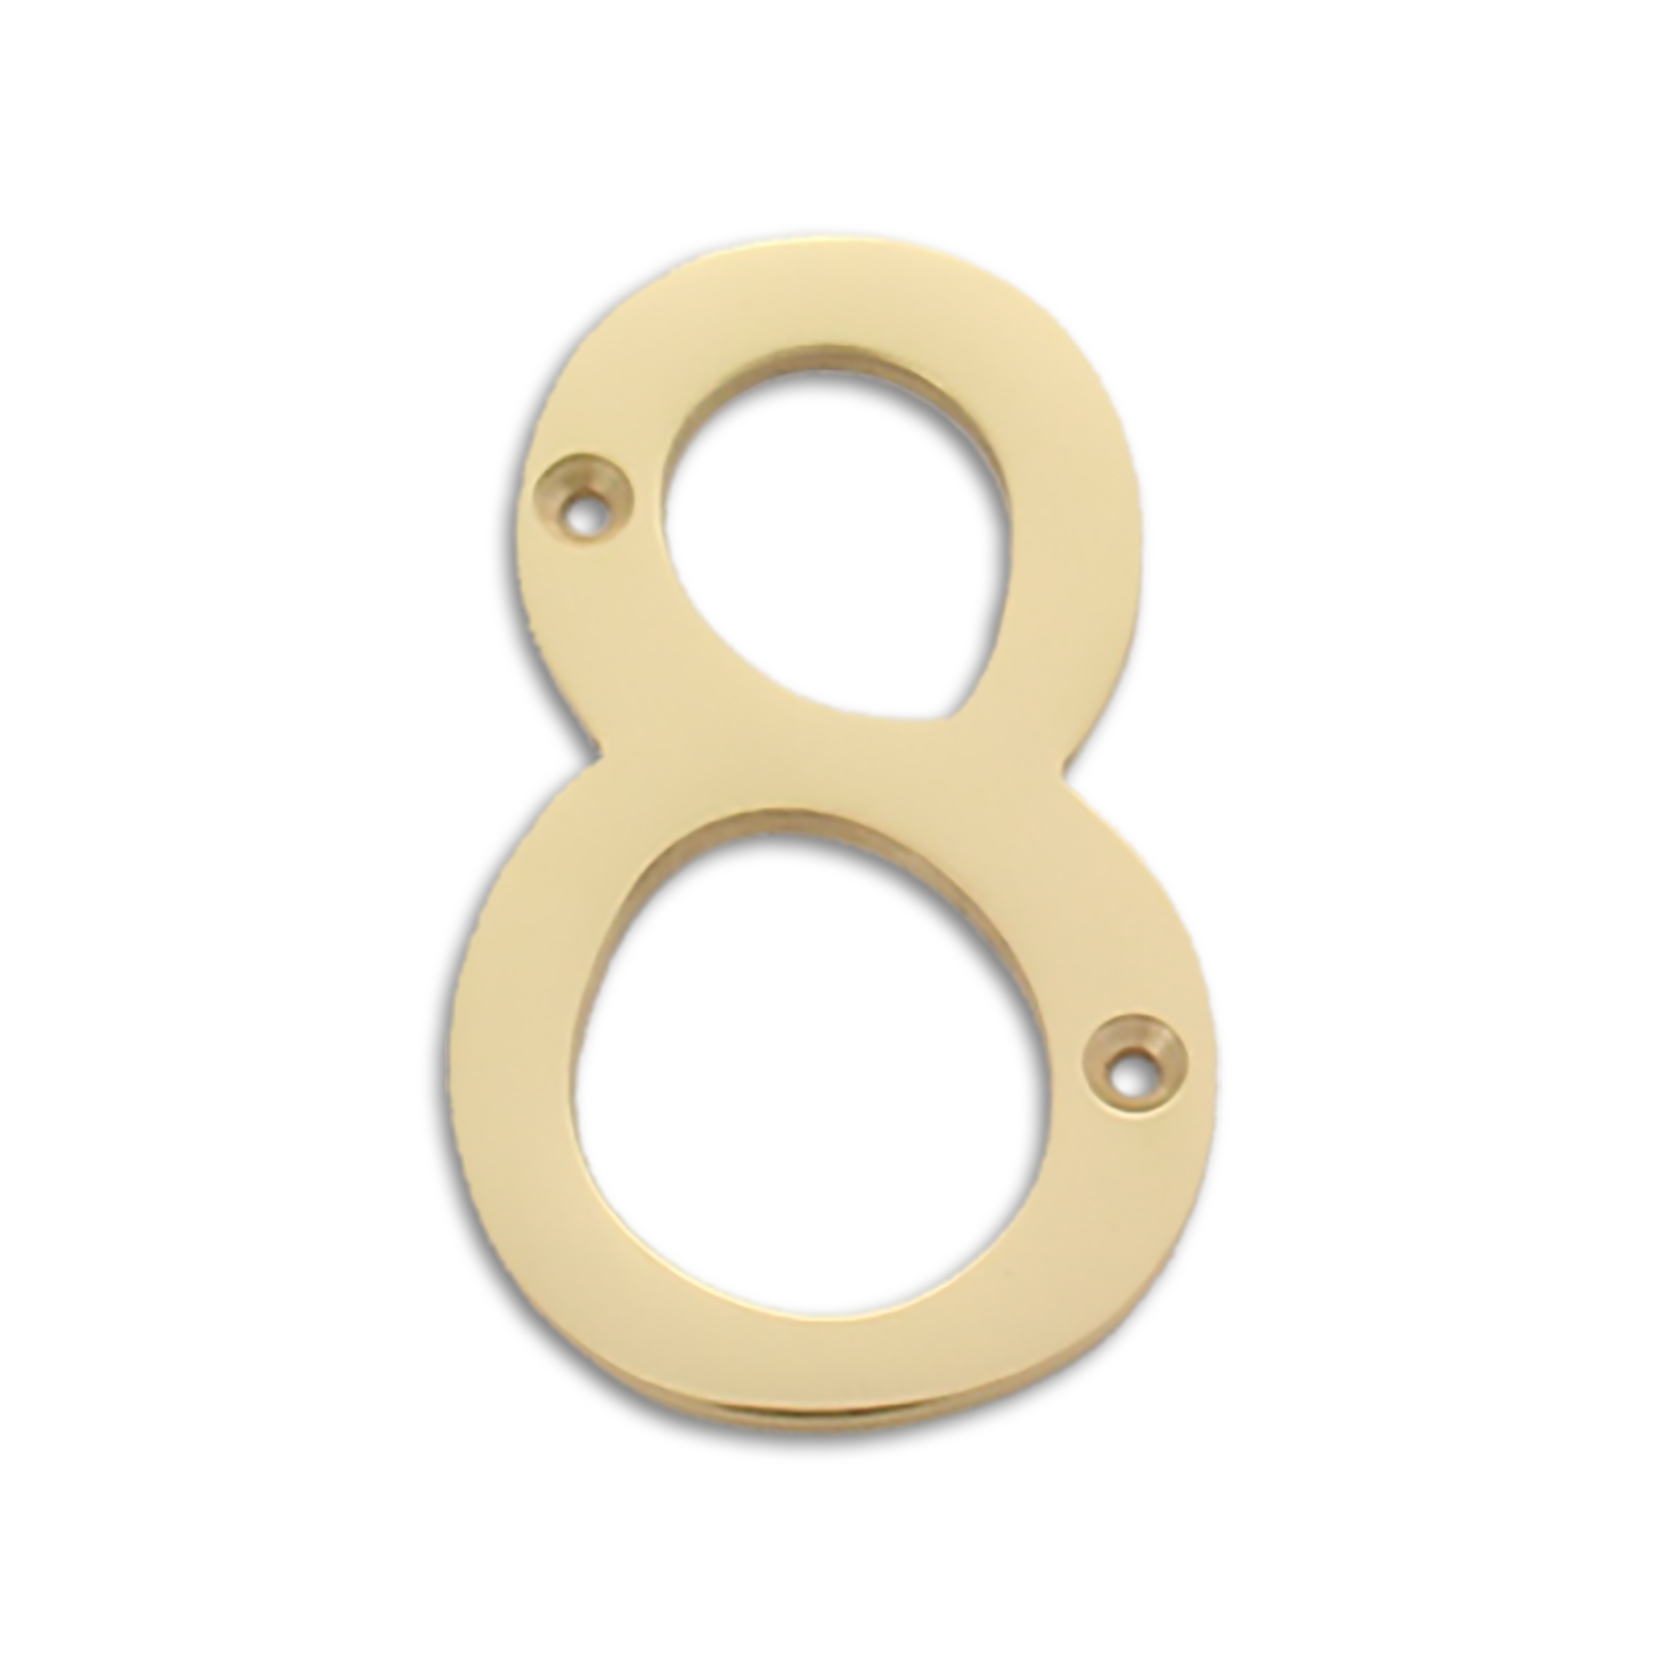 4-inch brass metal house number in polished brass finish - metal number 8